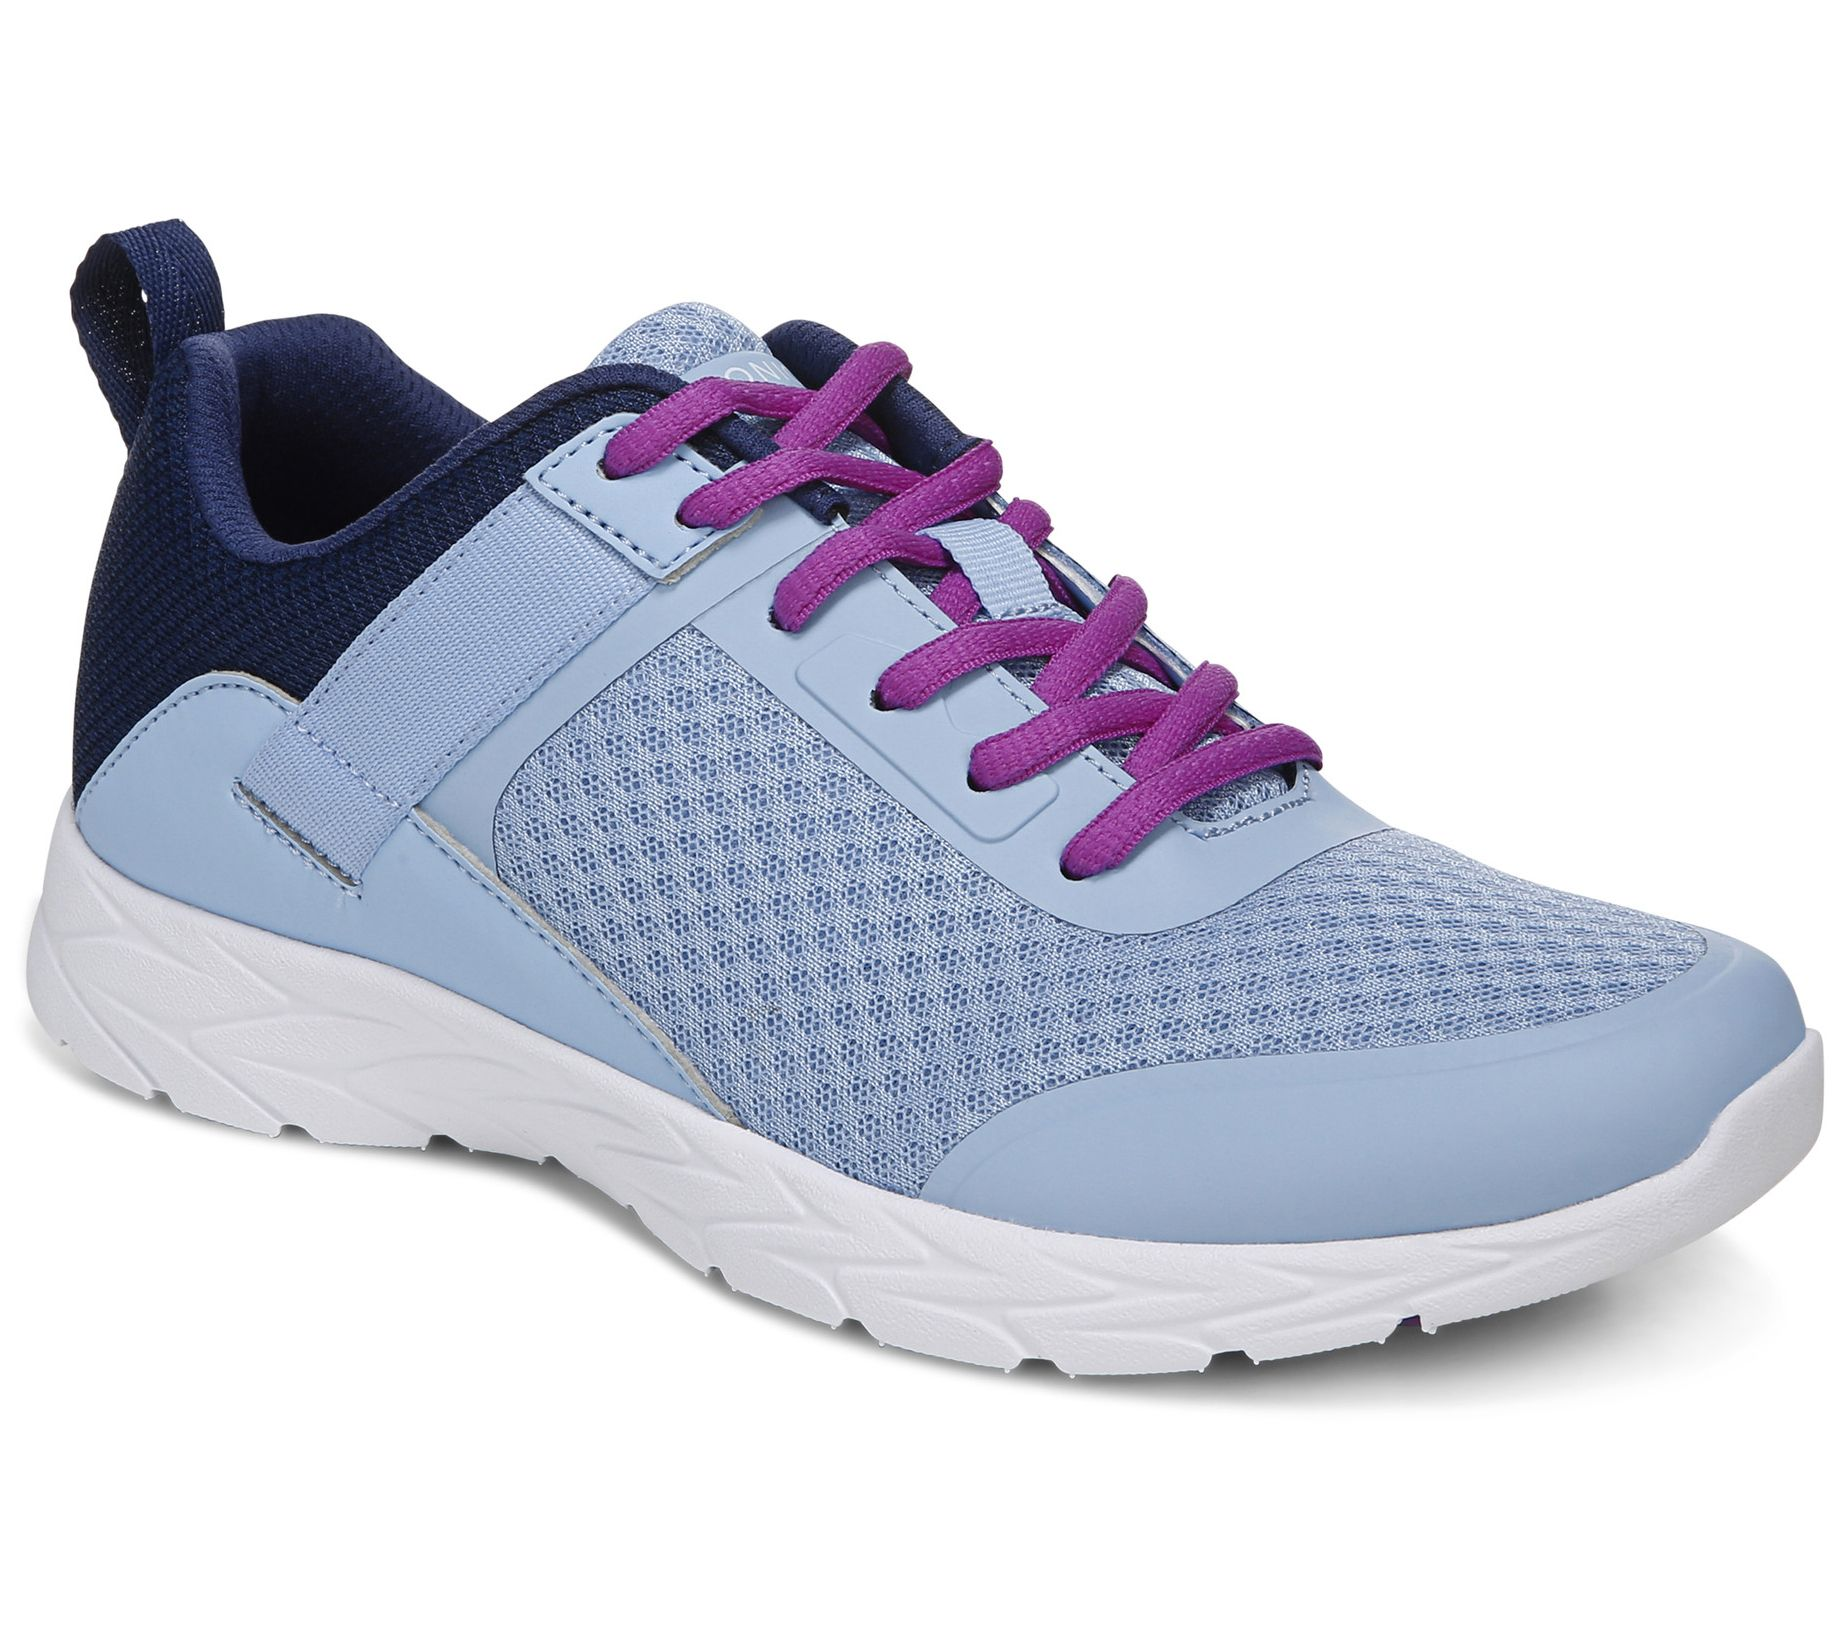 Vionic Lace-Up Athletic Sneakers - Isleah